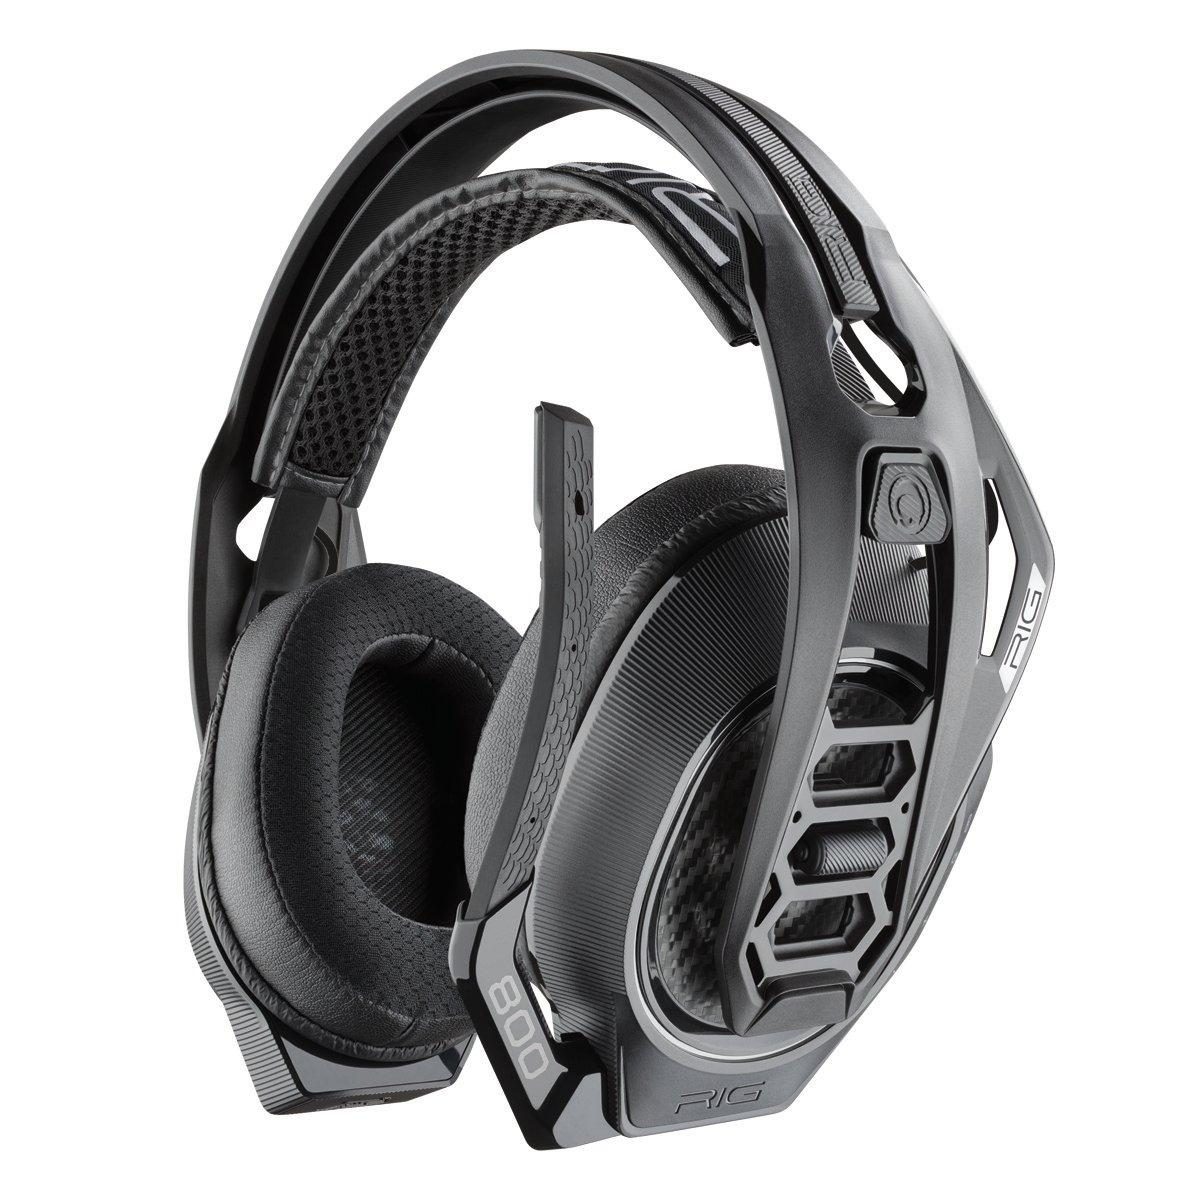 RIG 800HS Wireless Gaming Headset | <%Console%> | GameStop